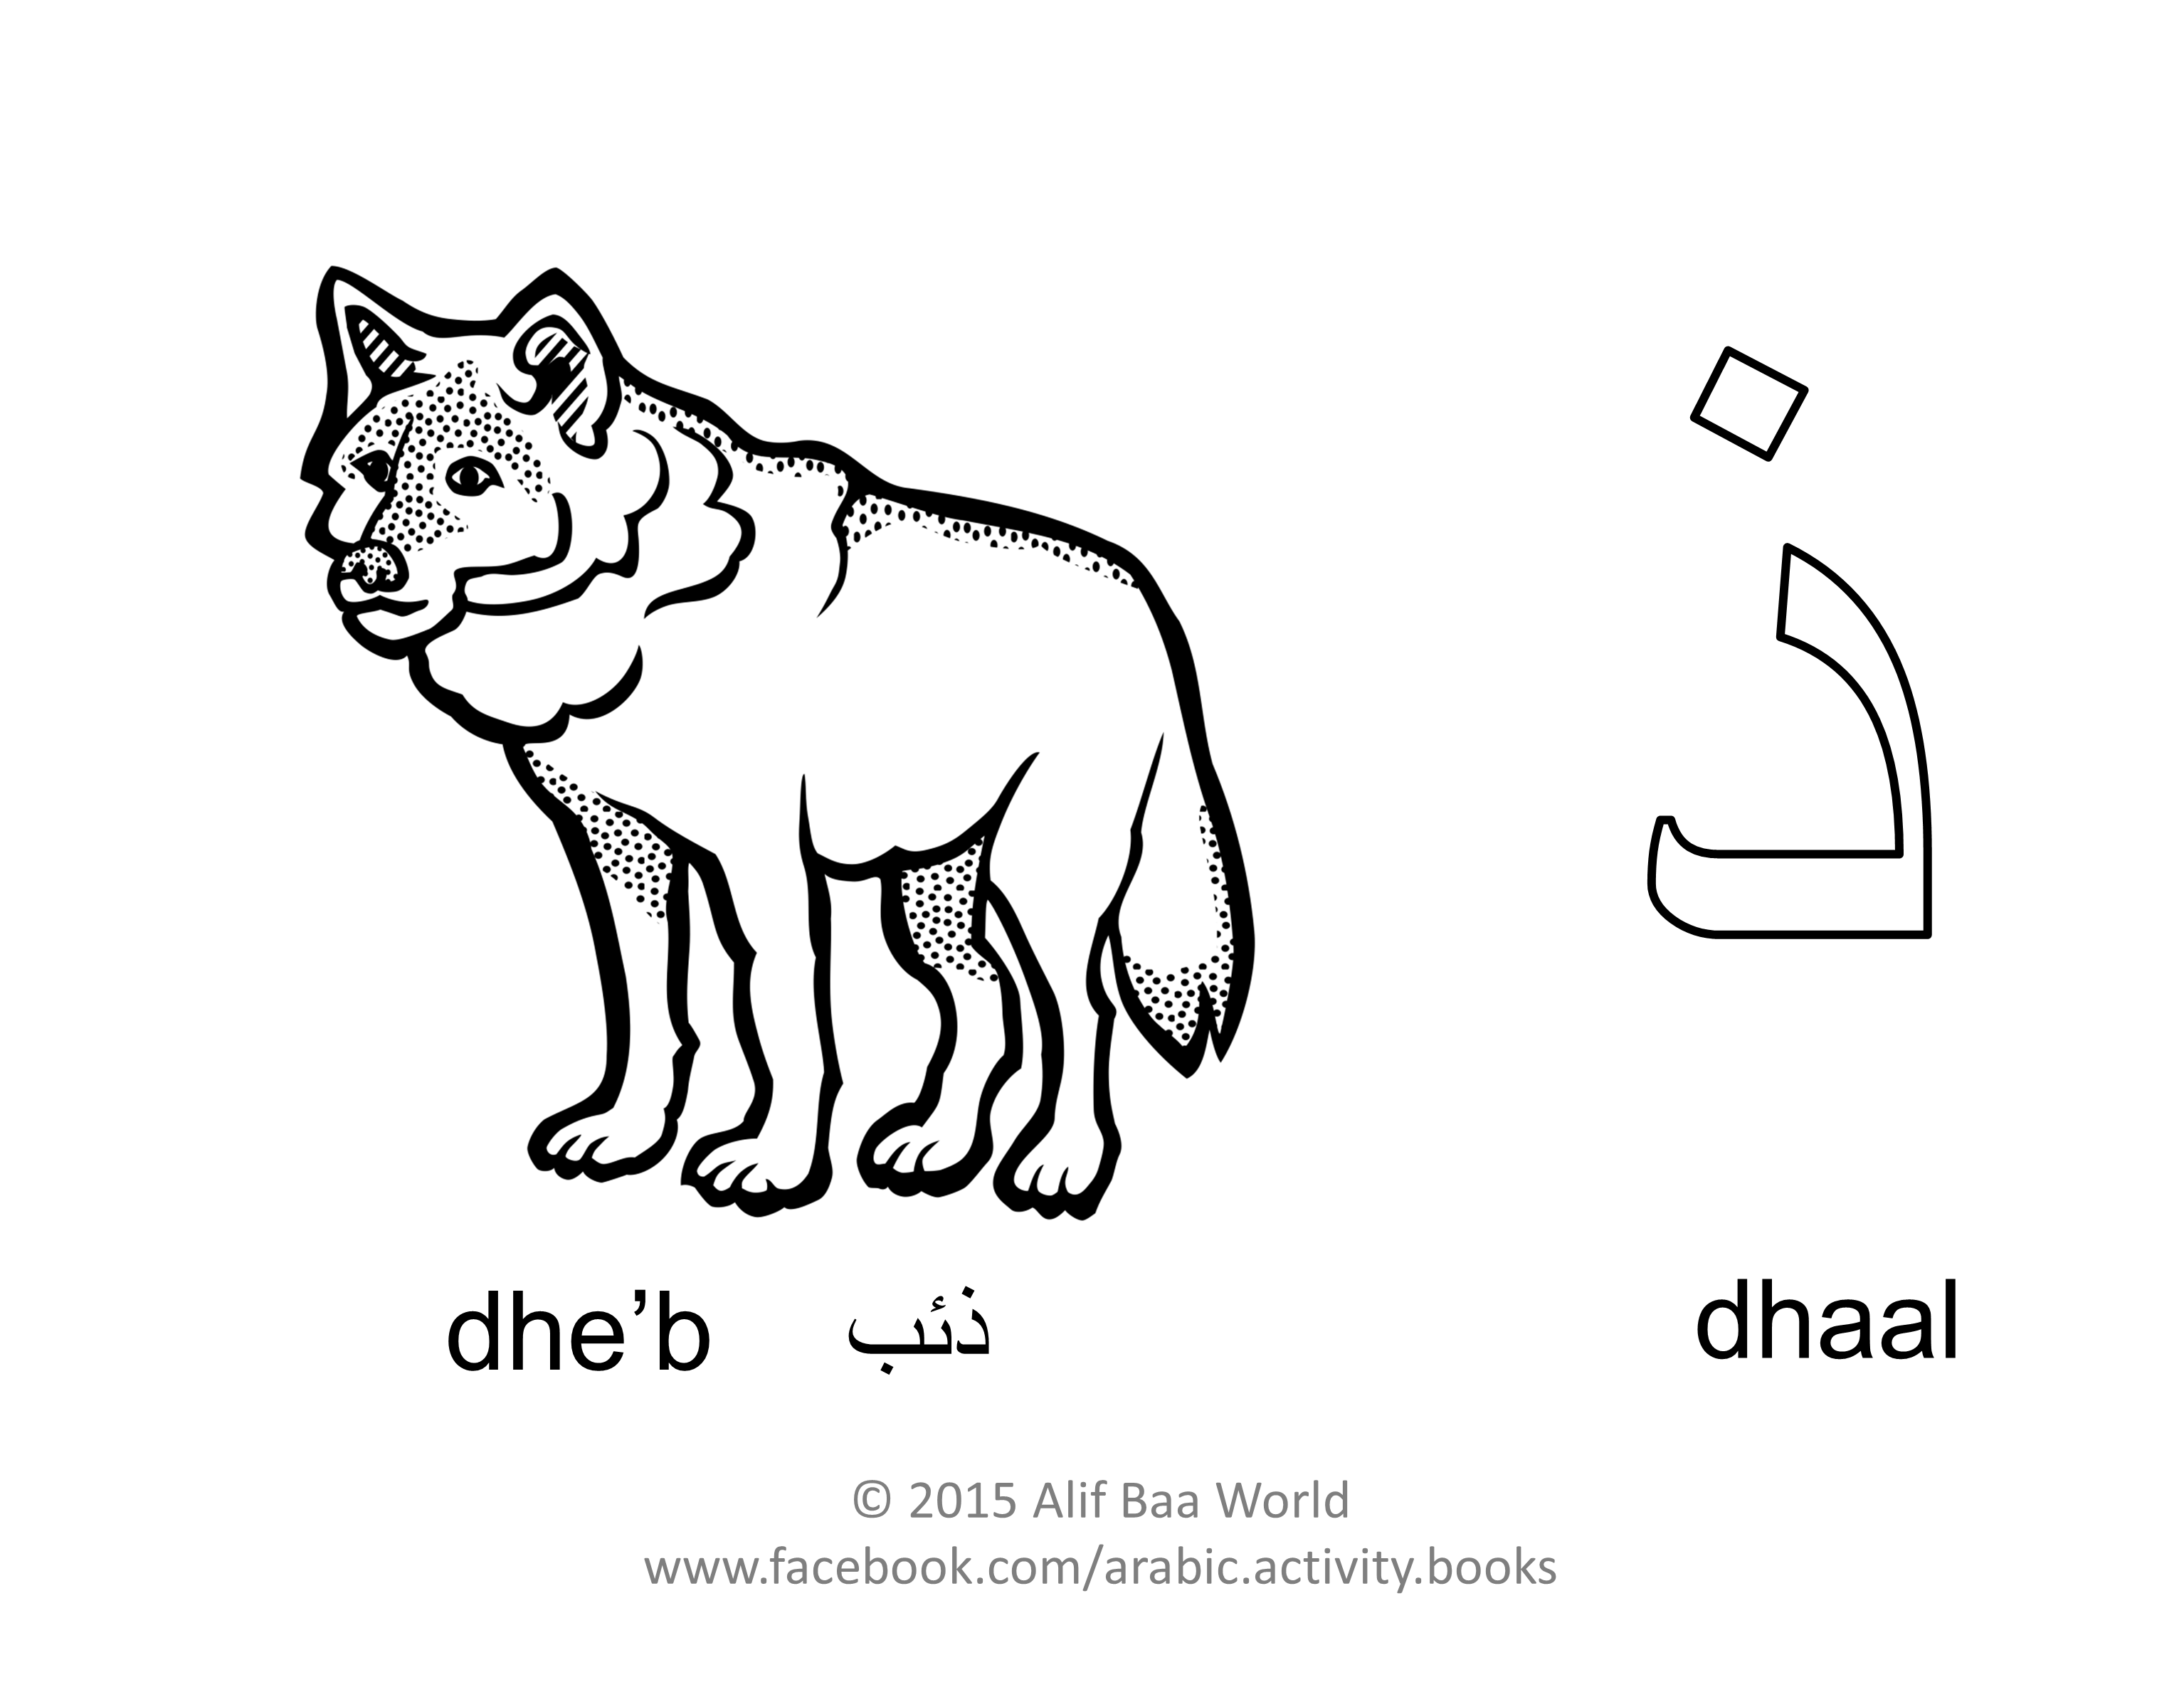 The 9th Letter Of The Arabic Alphabet Is Name Dhaal